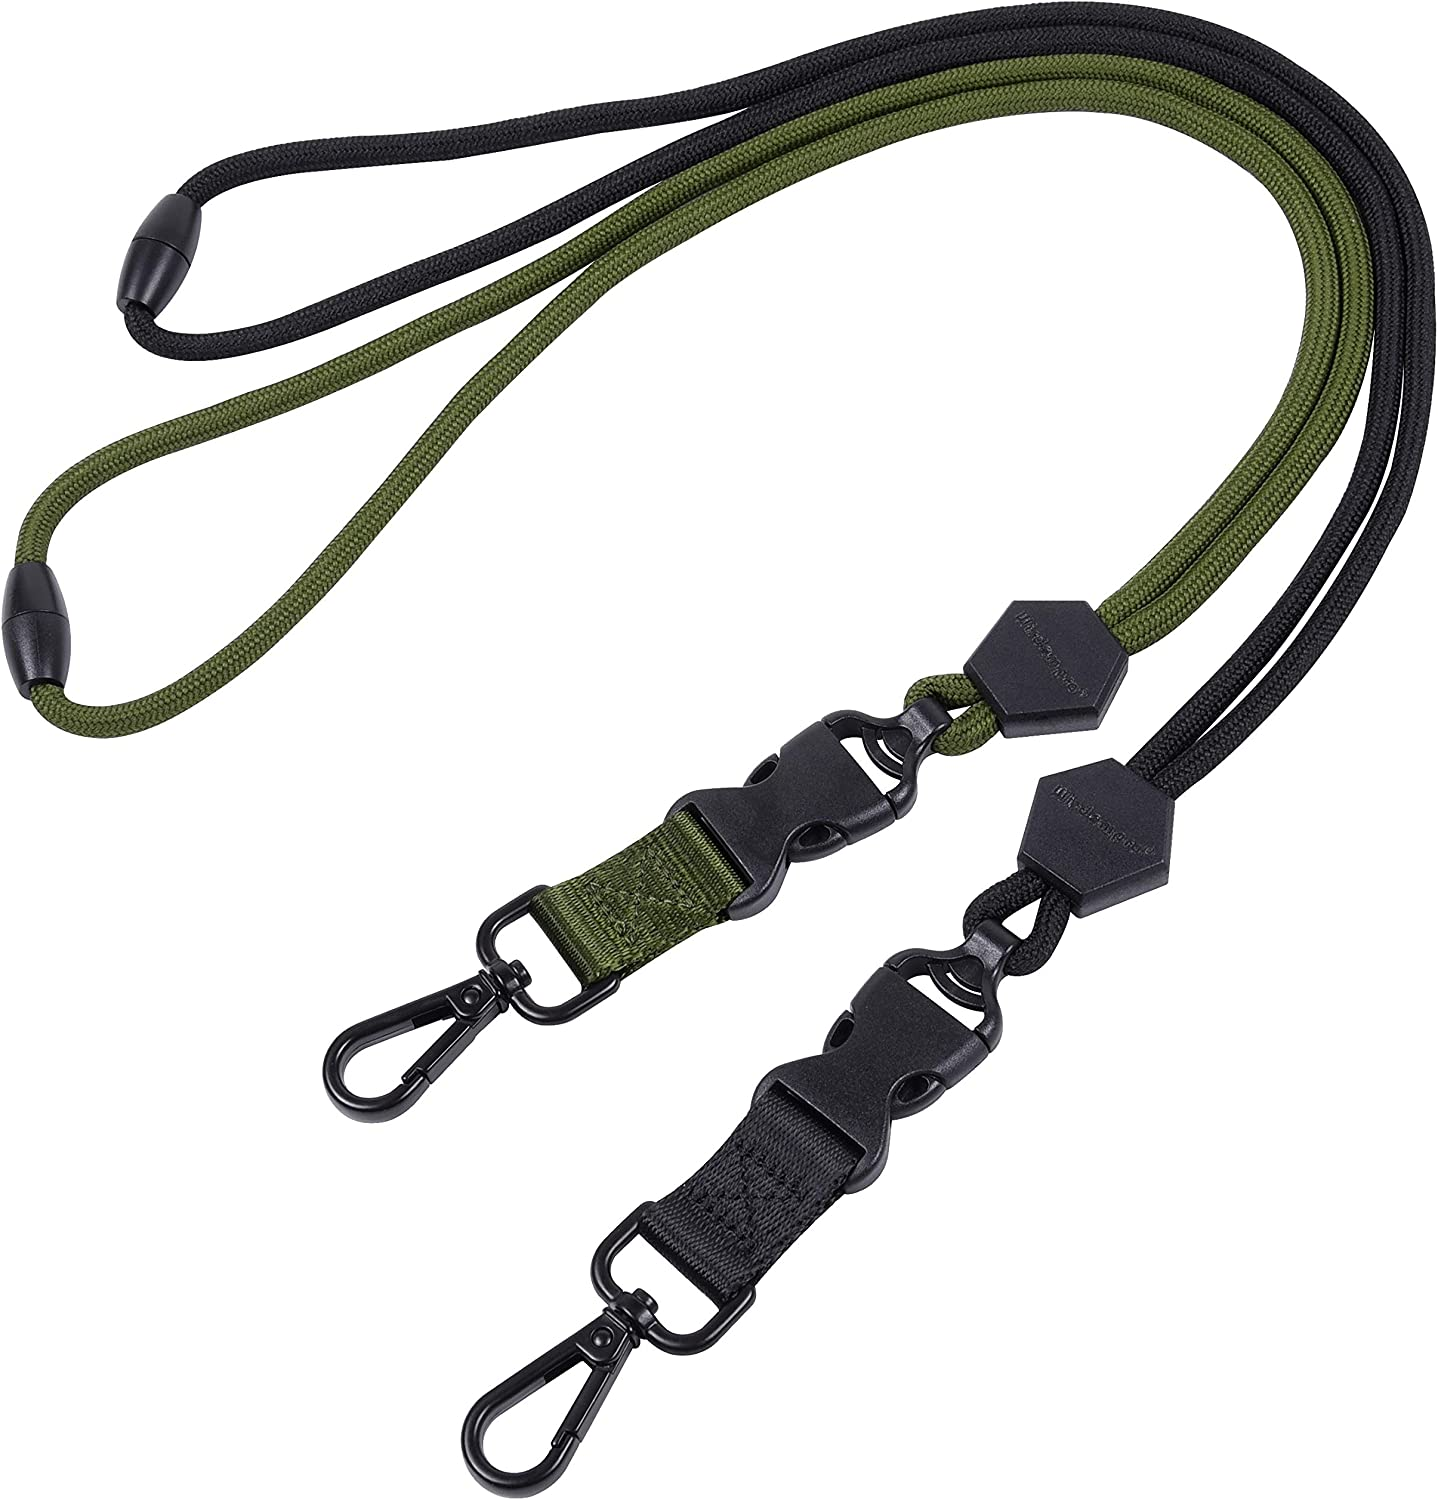 Wisdompro 2 Pack of 23 inch Durable Round Cord Adjustable Lanyard with Safety Breakaway Buckle Black and Army Green Detachable Buckle and Heavy Duty Metal Hook for ID Card Badge Holder and Keys